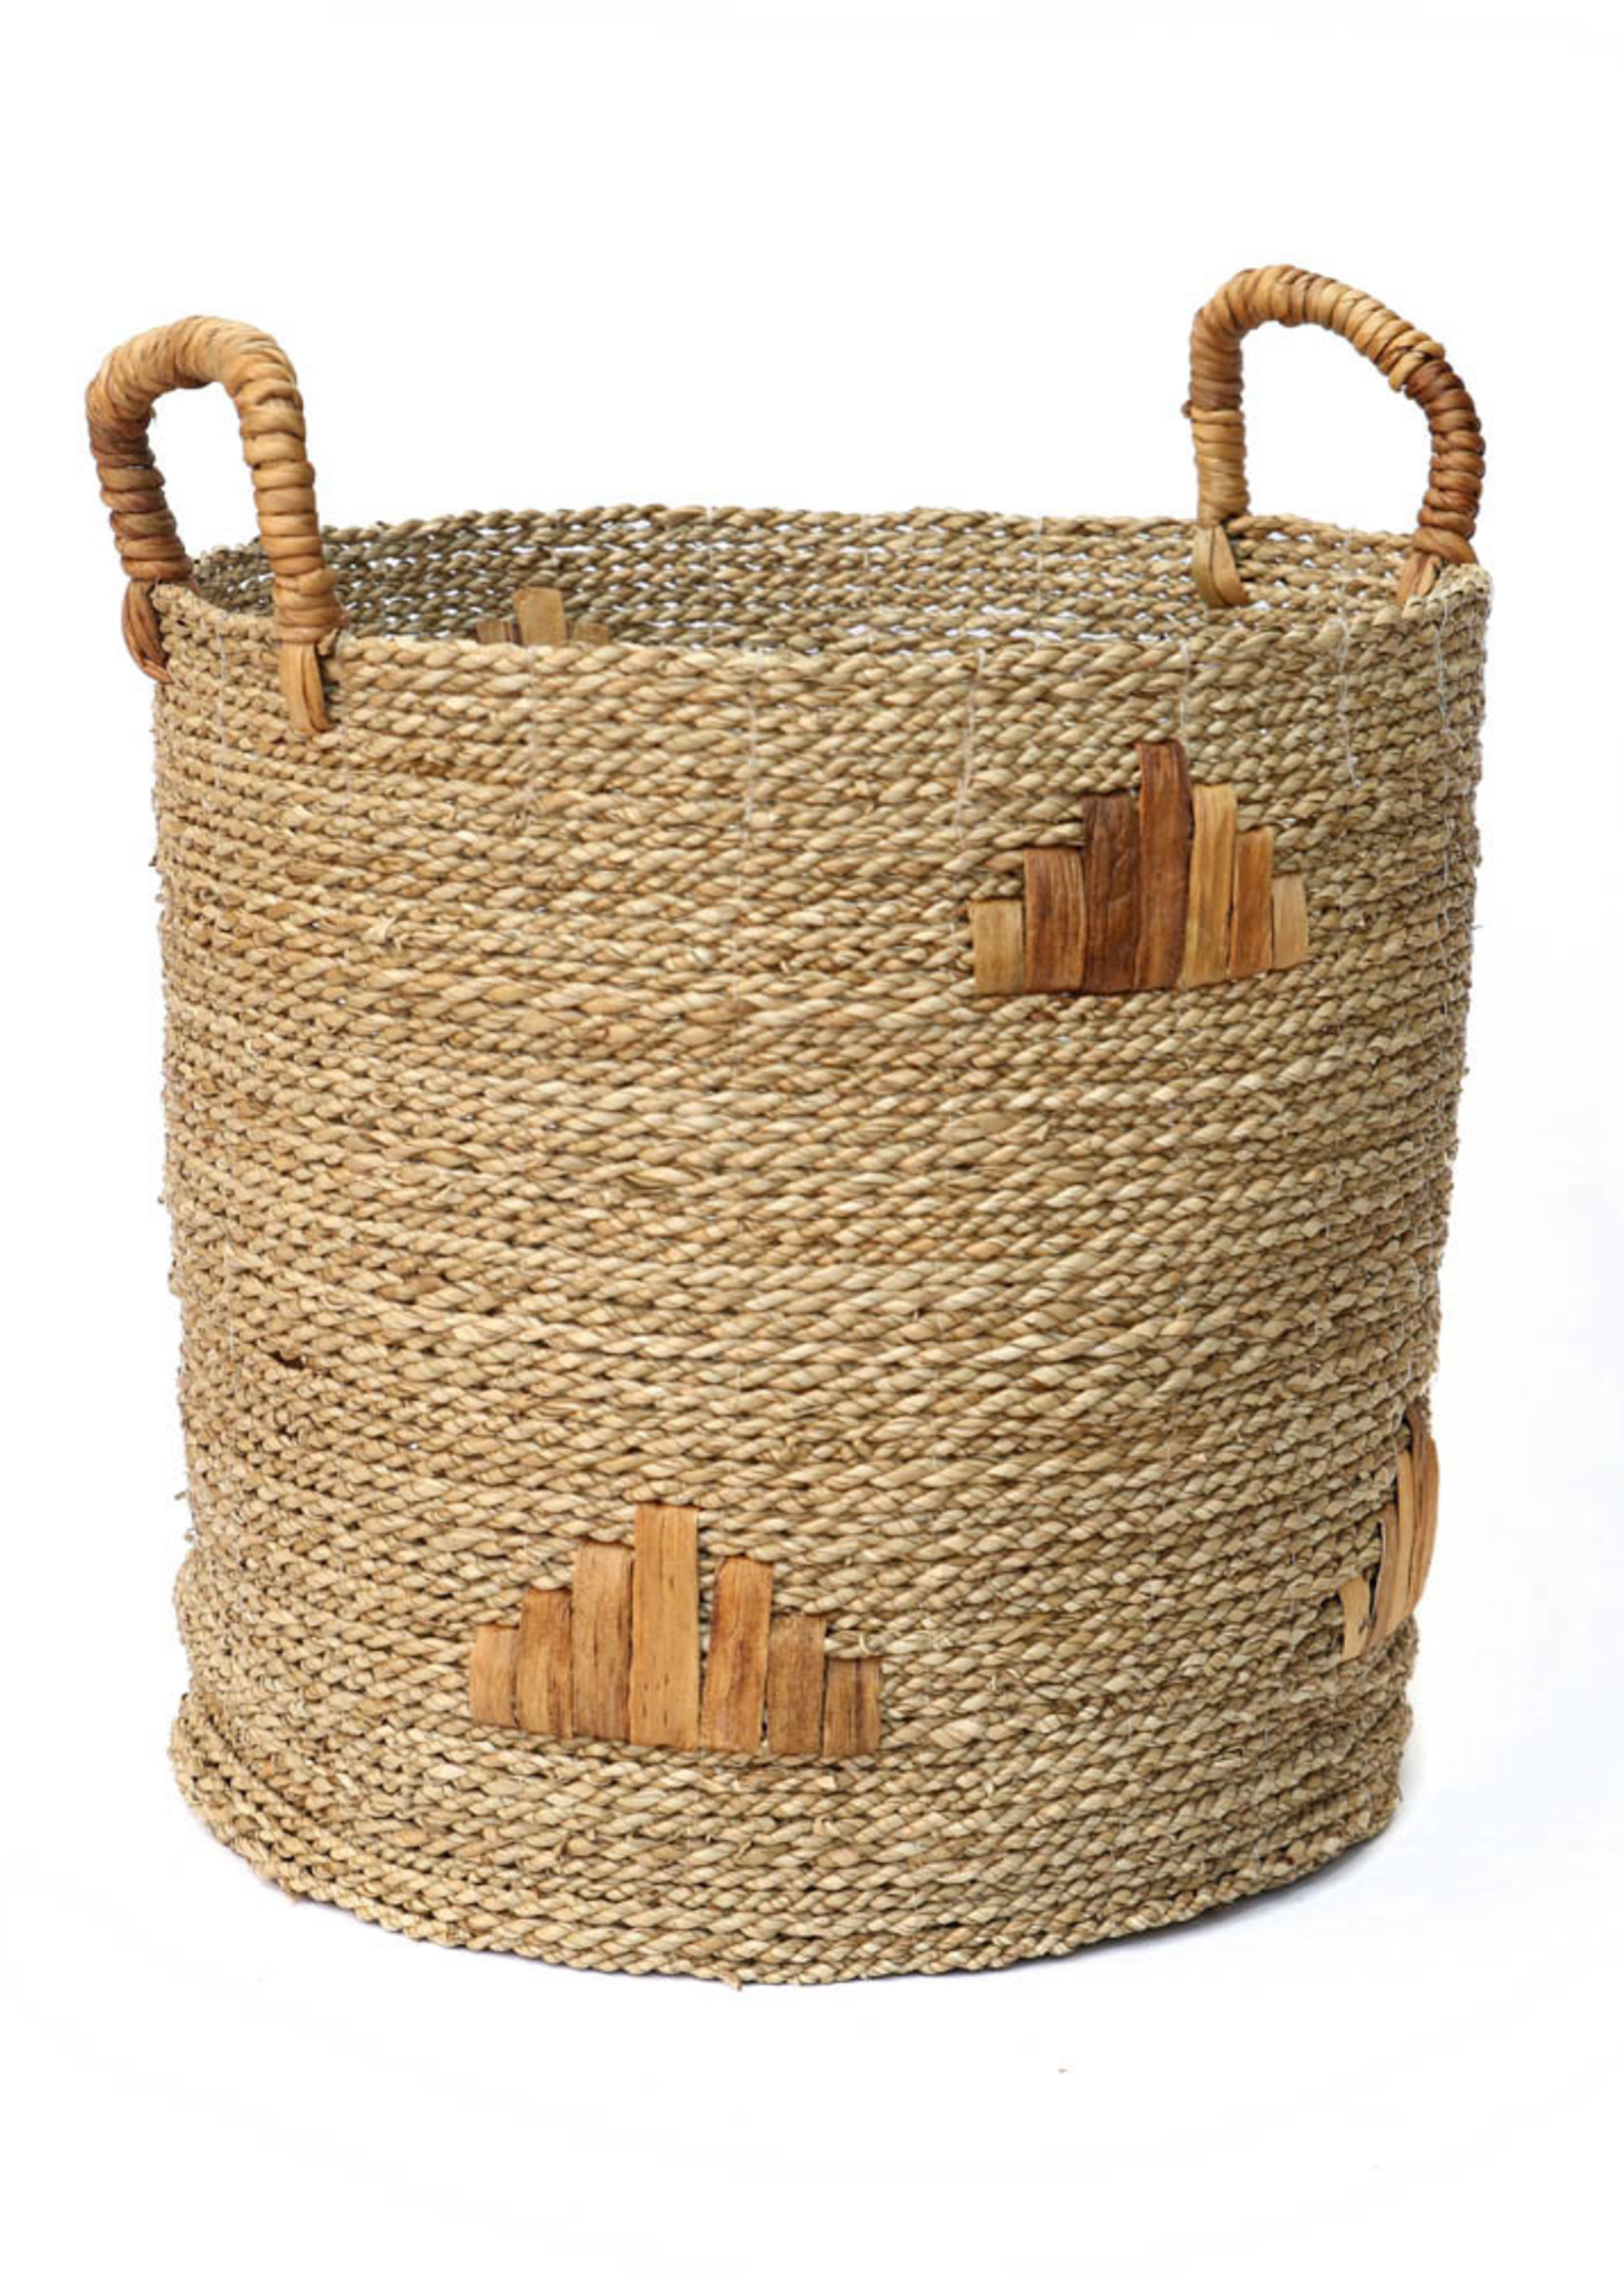 The Twiggy Graphic Baskets - Large